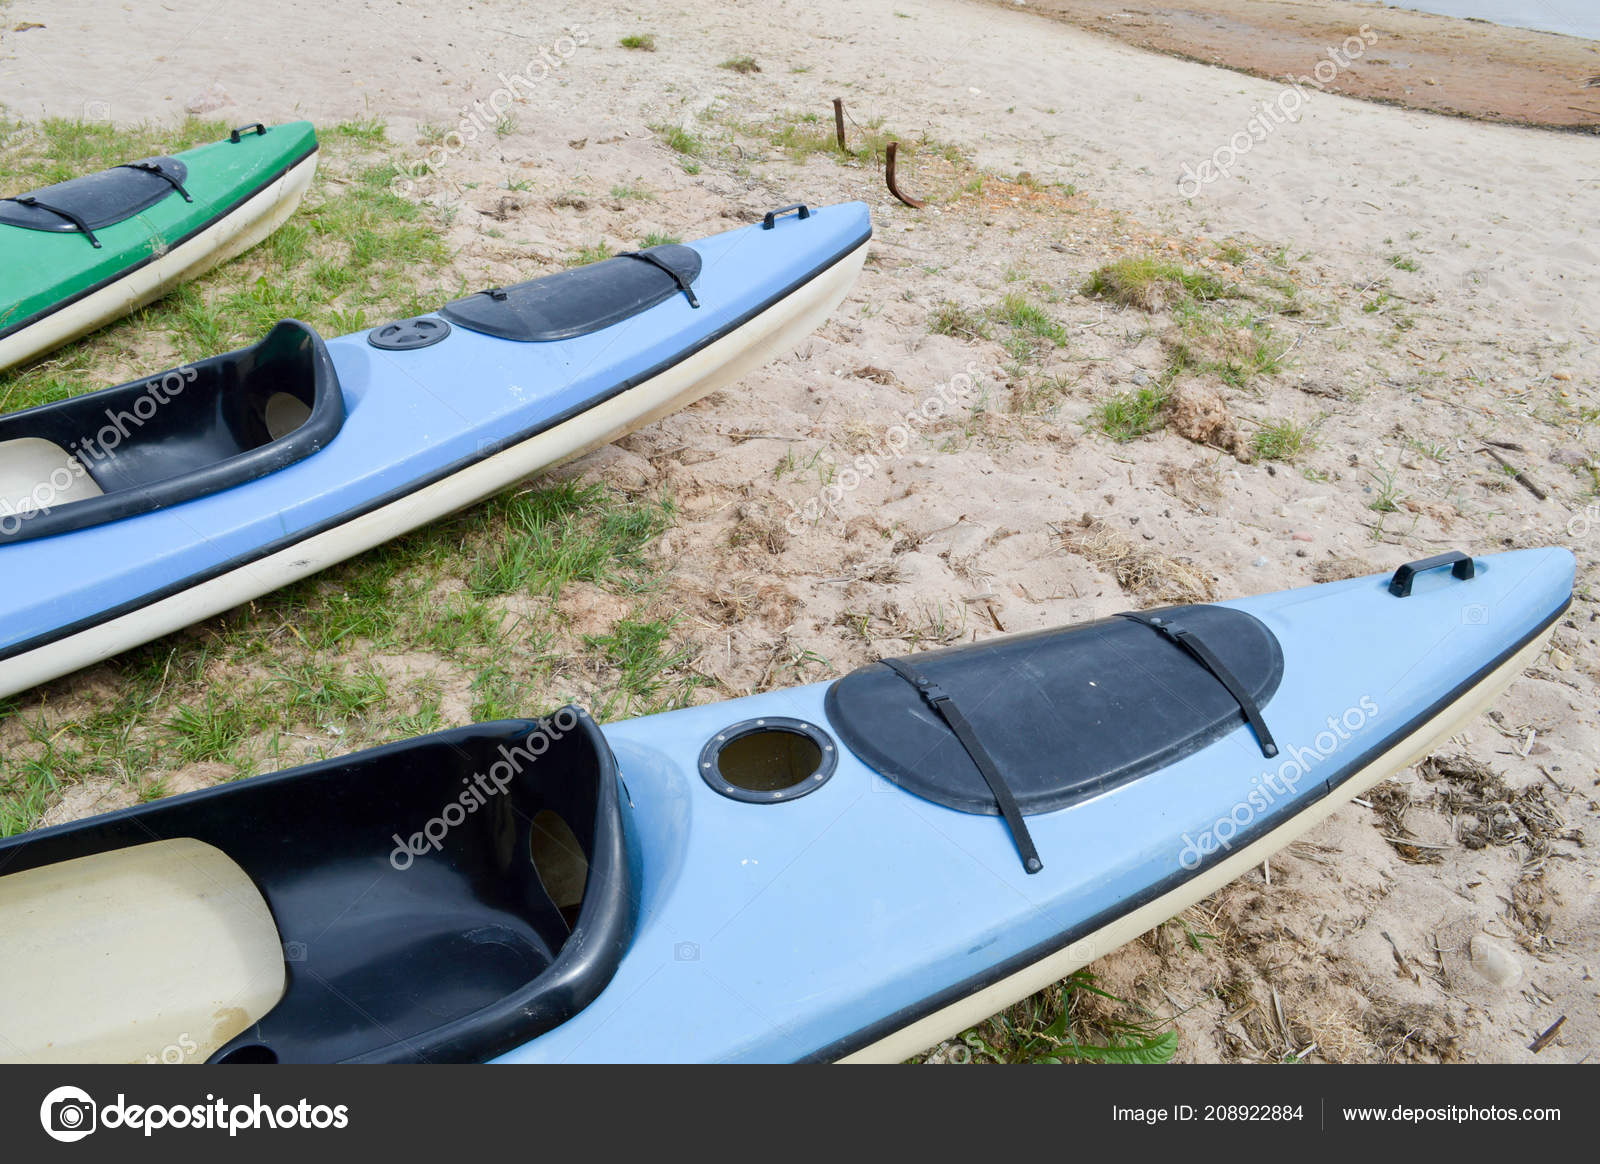 A lot of blue and green canoe kayaks with front parts of the